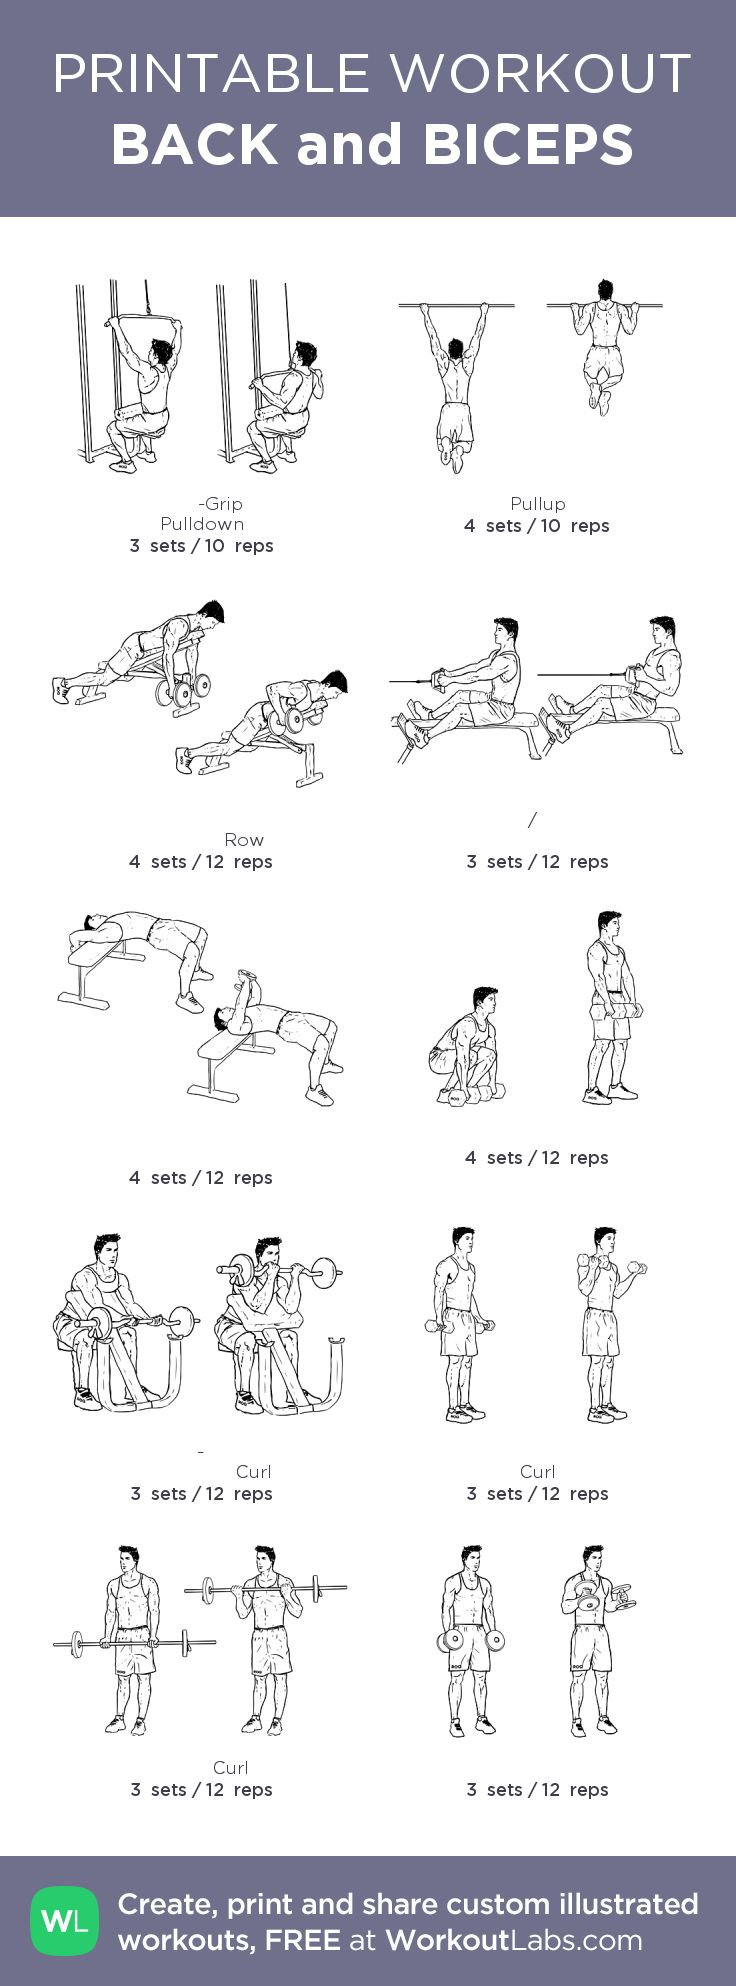 BACK and BICEPS:my custom printable workout by @WorkoutLabs #workoutlabs #customworkout